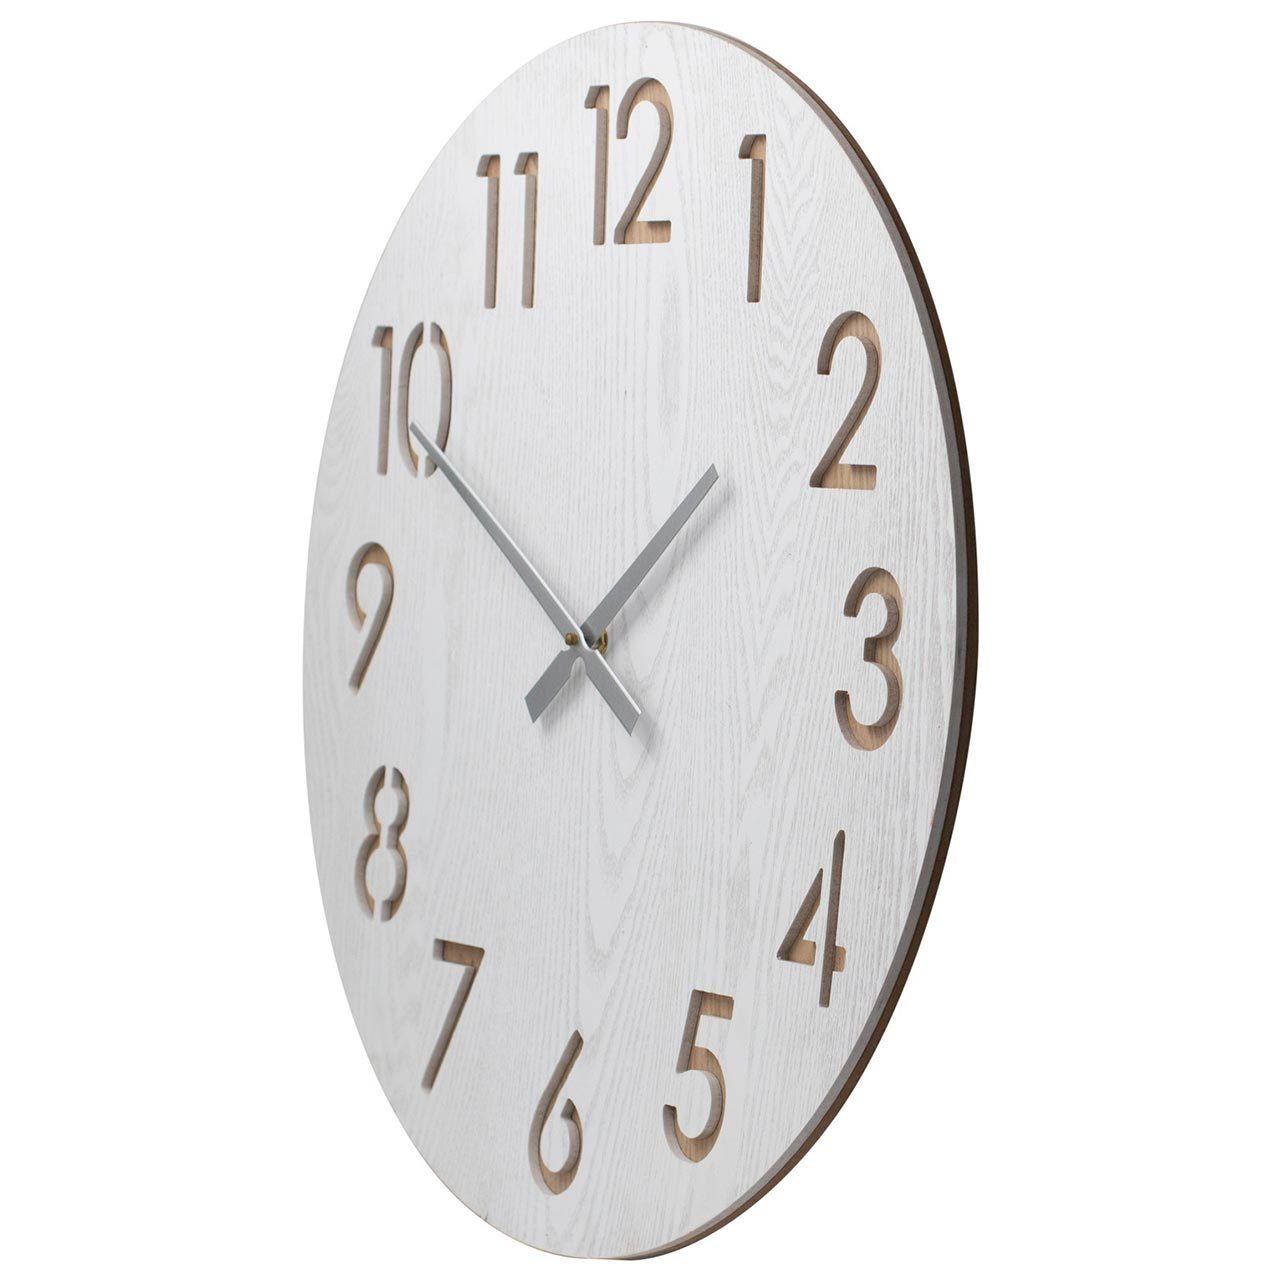 ONE SIX EIGHT LONDON silent wall clock HENRIK white - Ø 60 x 4.0 cm | the design gift shop